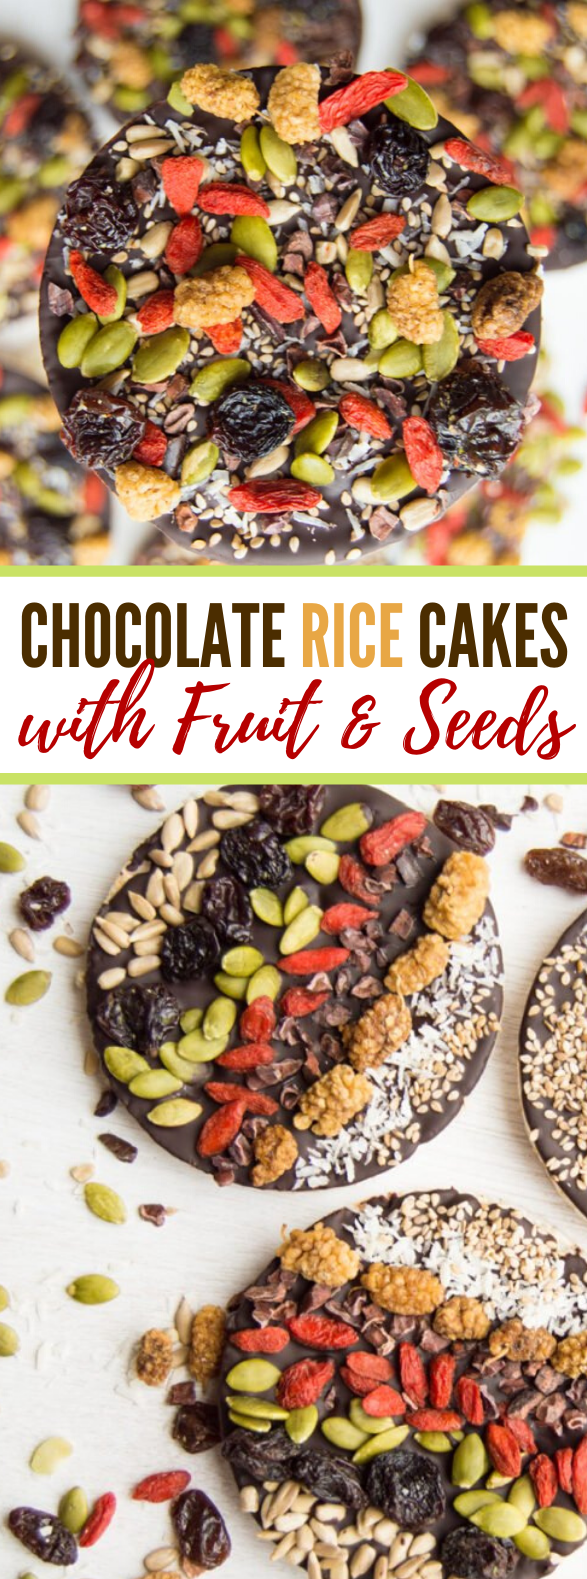 CHOCOLATE RICE CAKES WITH FRUIT AND SEEDS RECIPE #diet #healthysnack